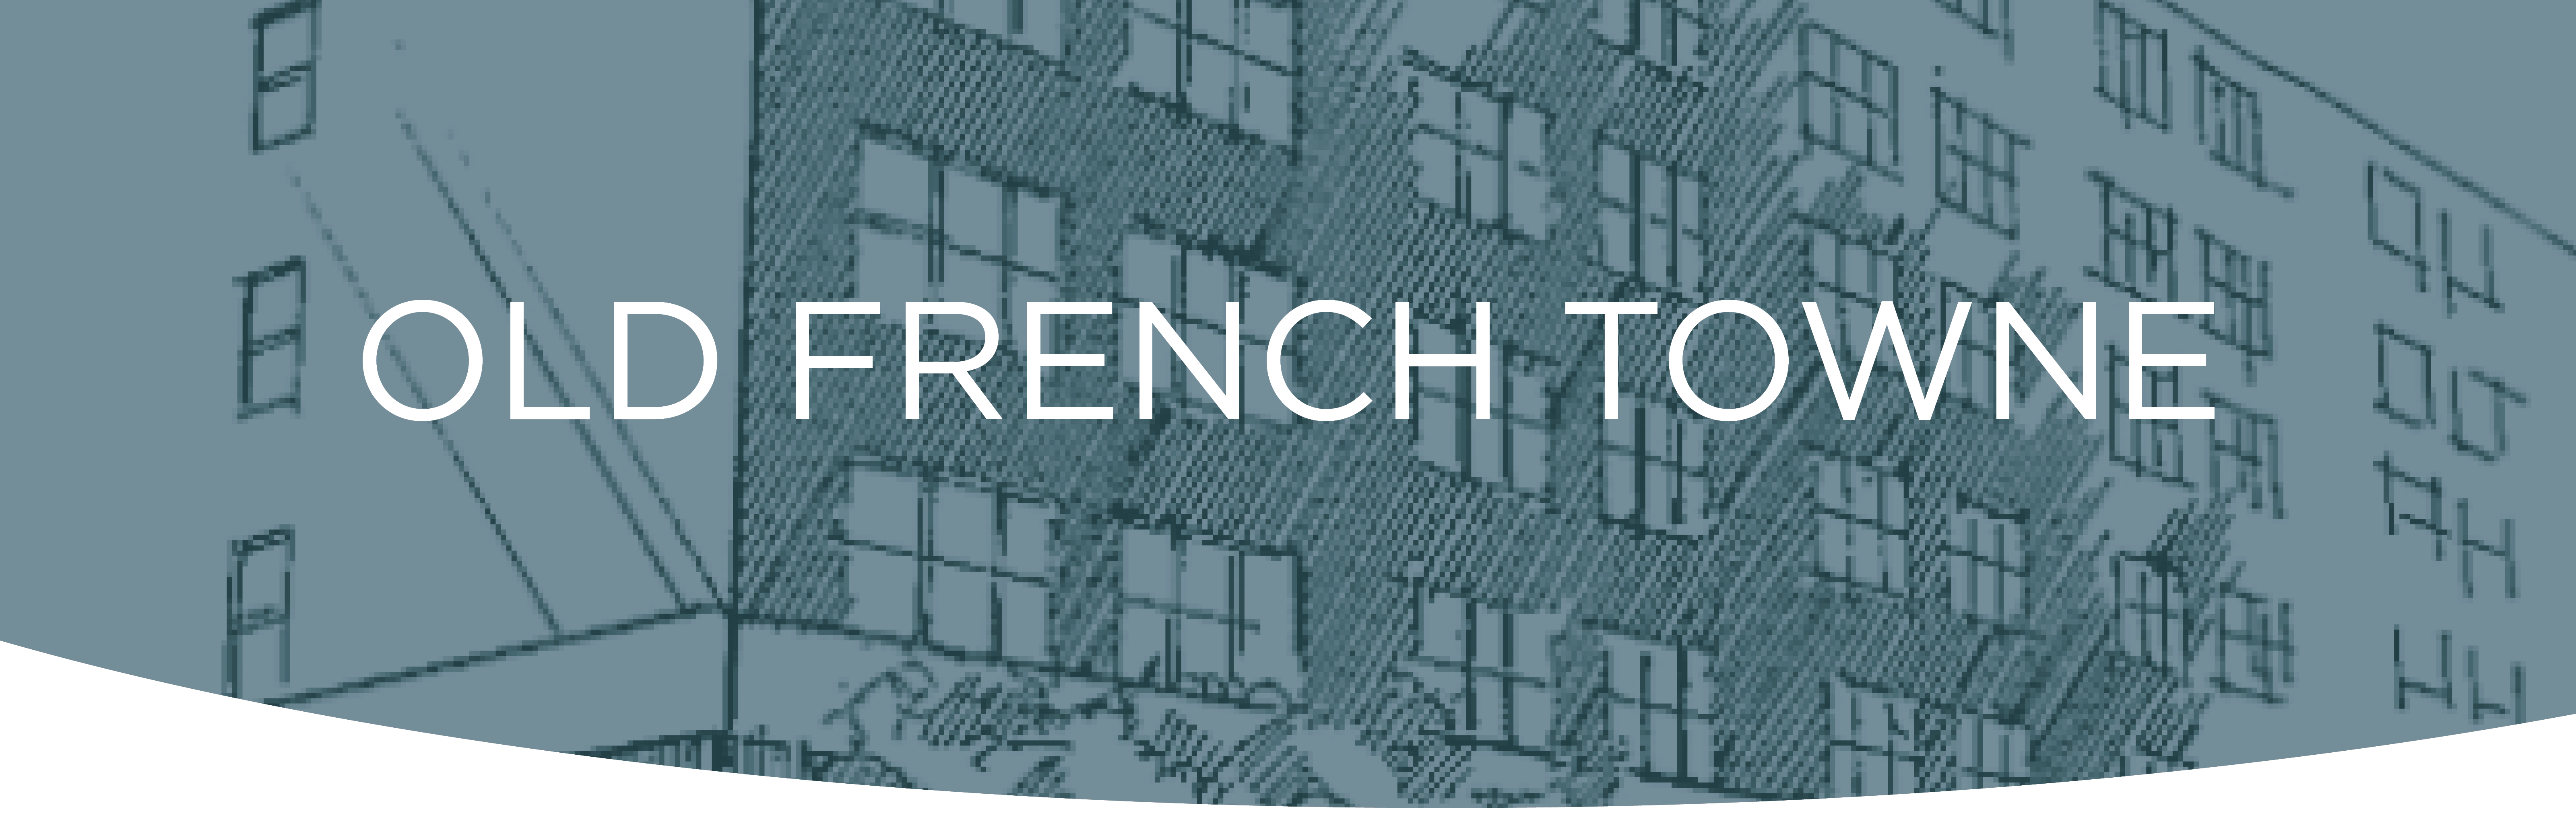 old french towne header